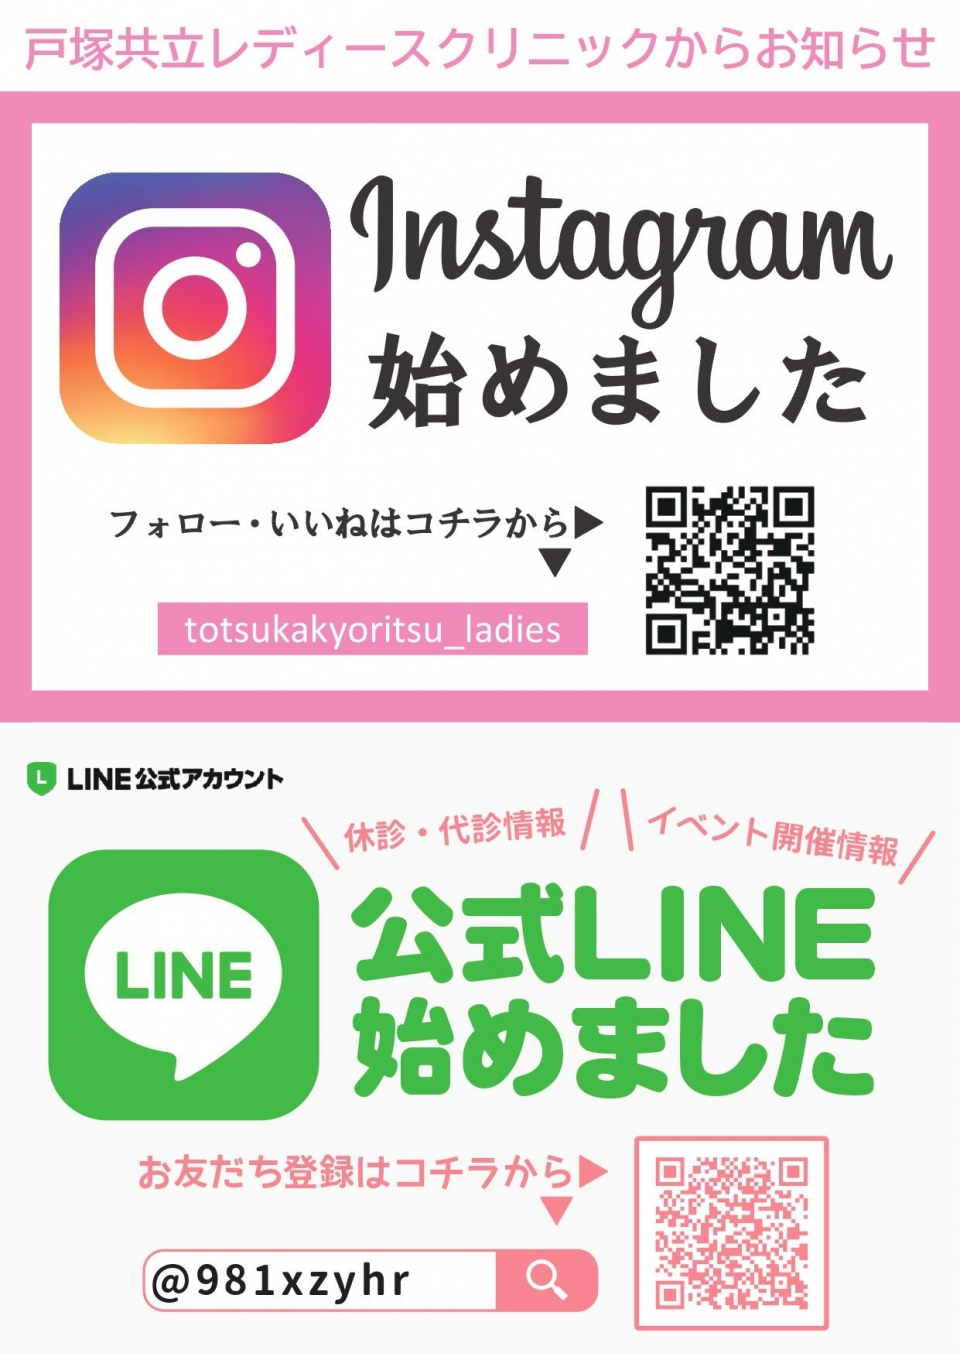 <strong>公式LINE開設のお知らせ</strong>